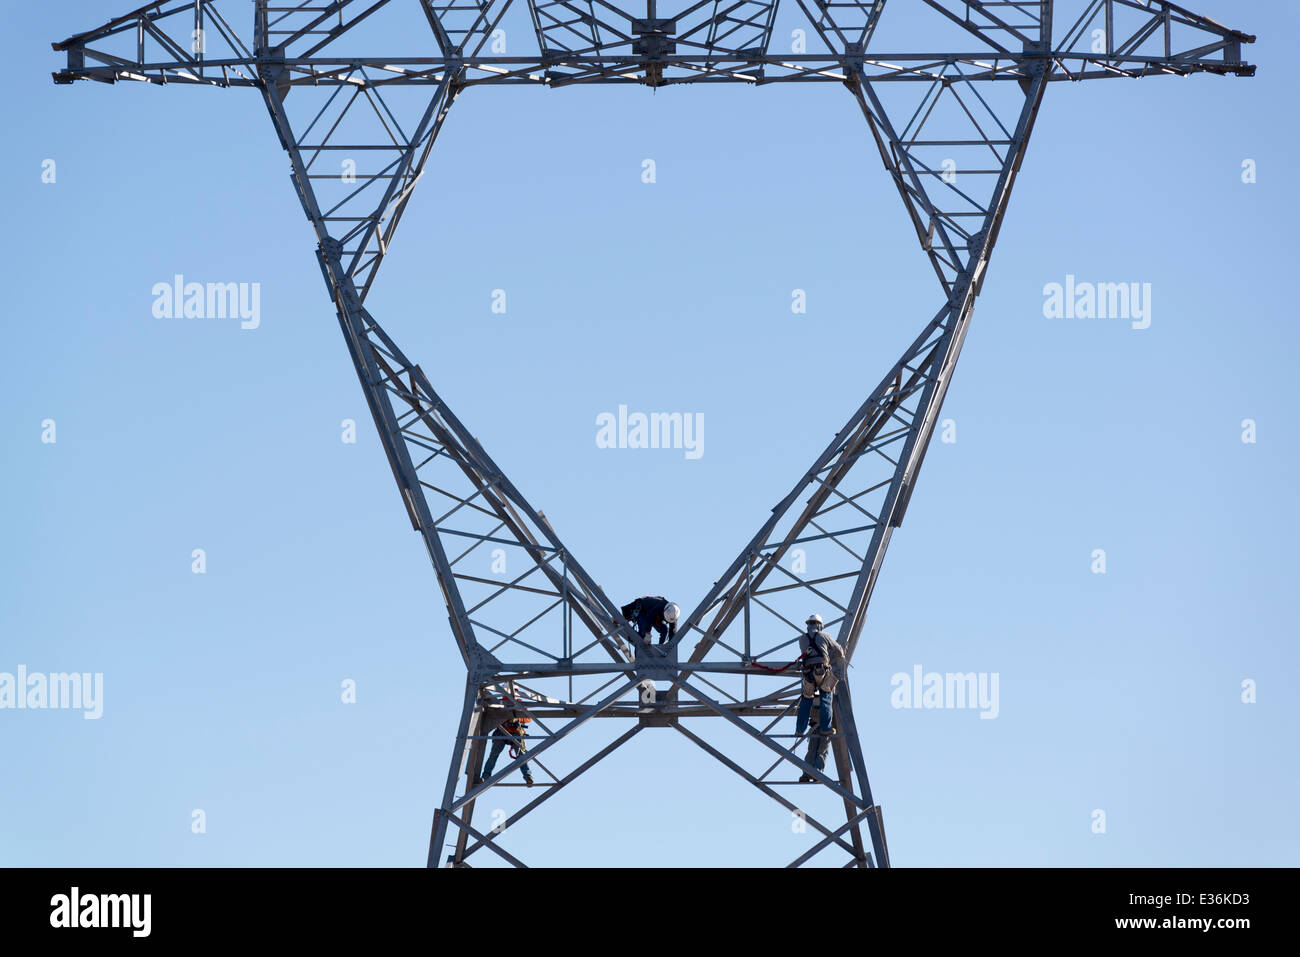 Construction crew assembling electricity transmission tower in Utah. - Stock Image